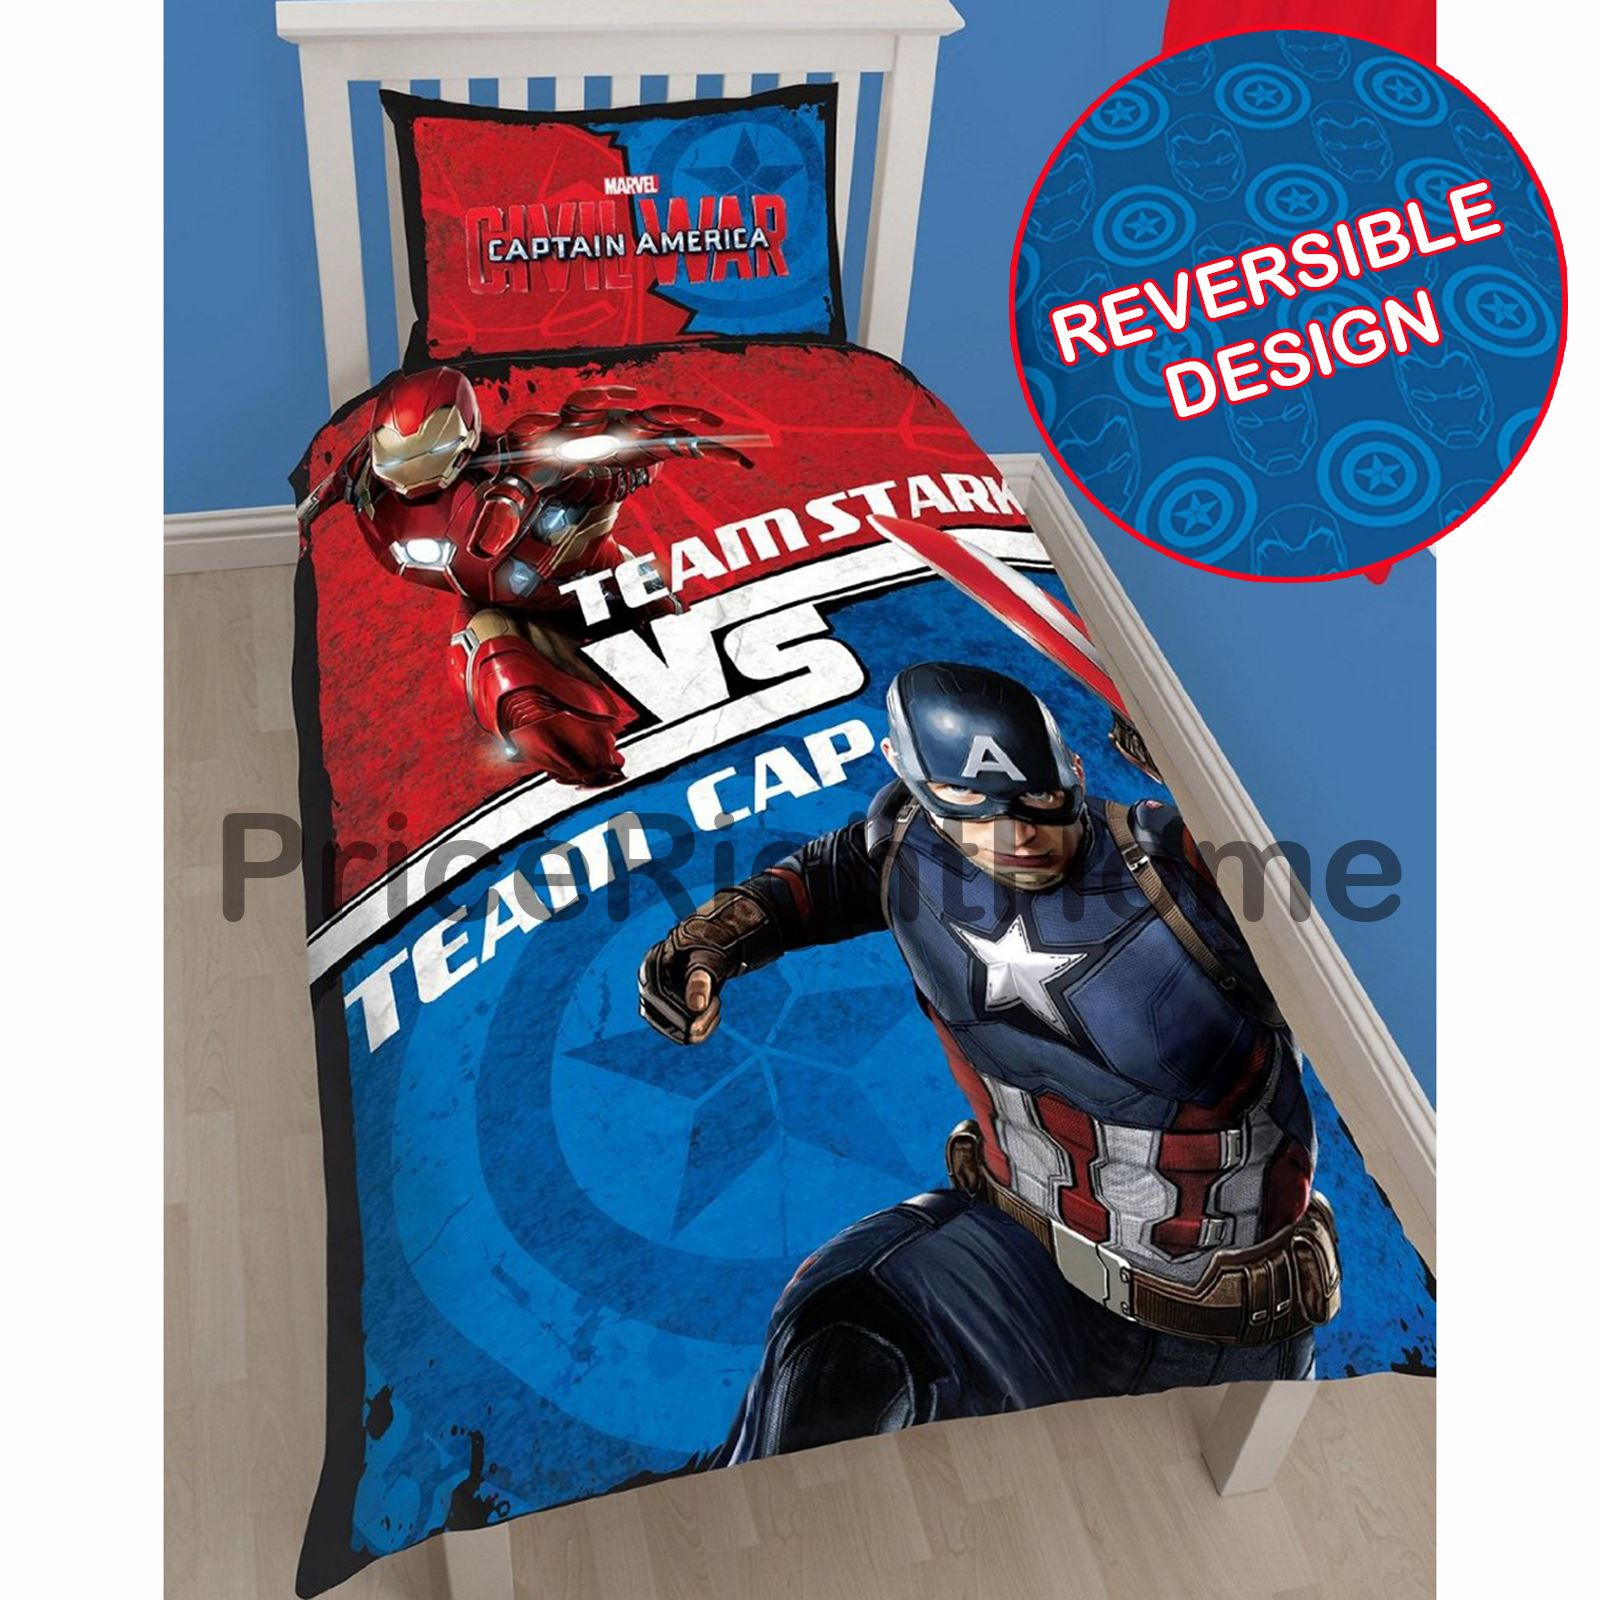 official avengers marvel comics bedding + bedroom accessories